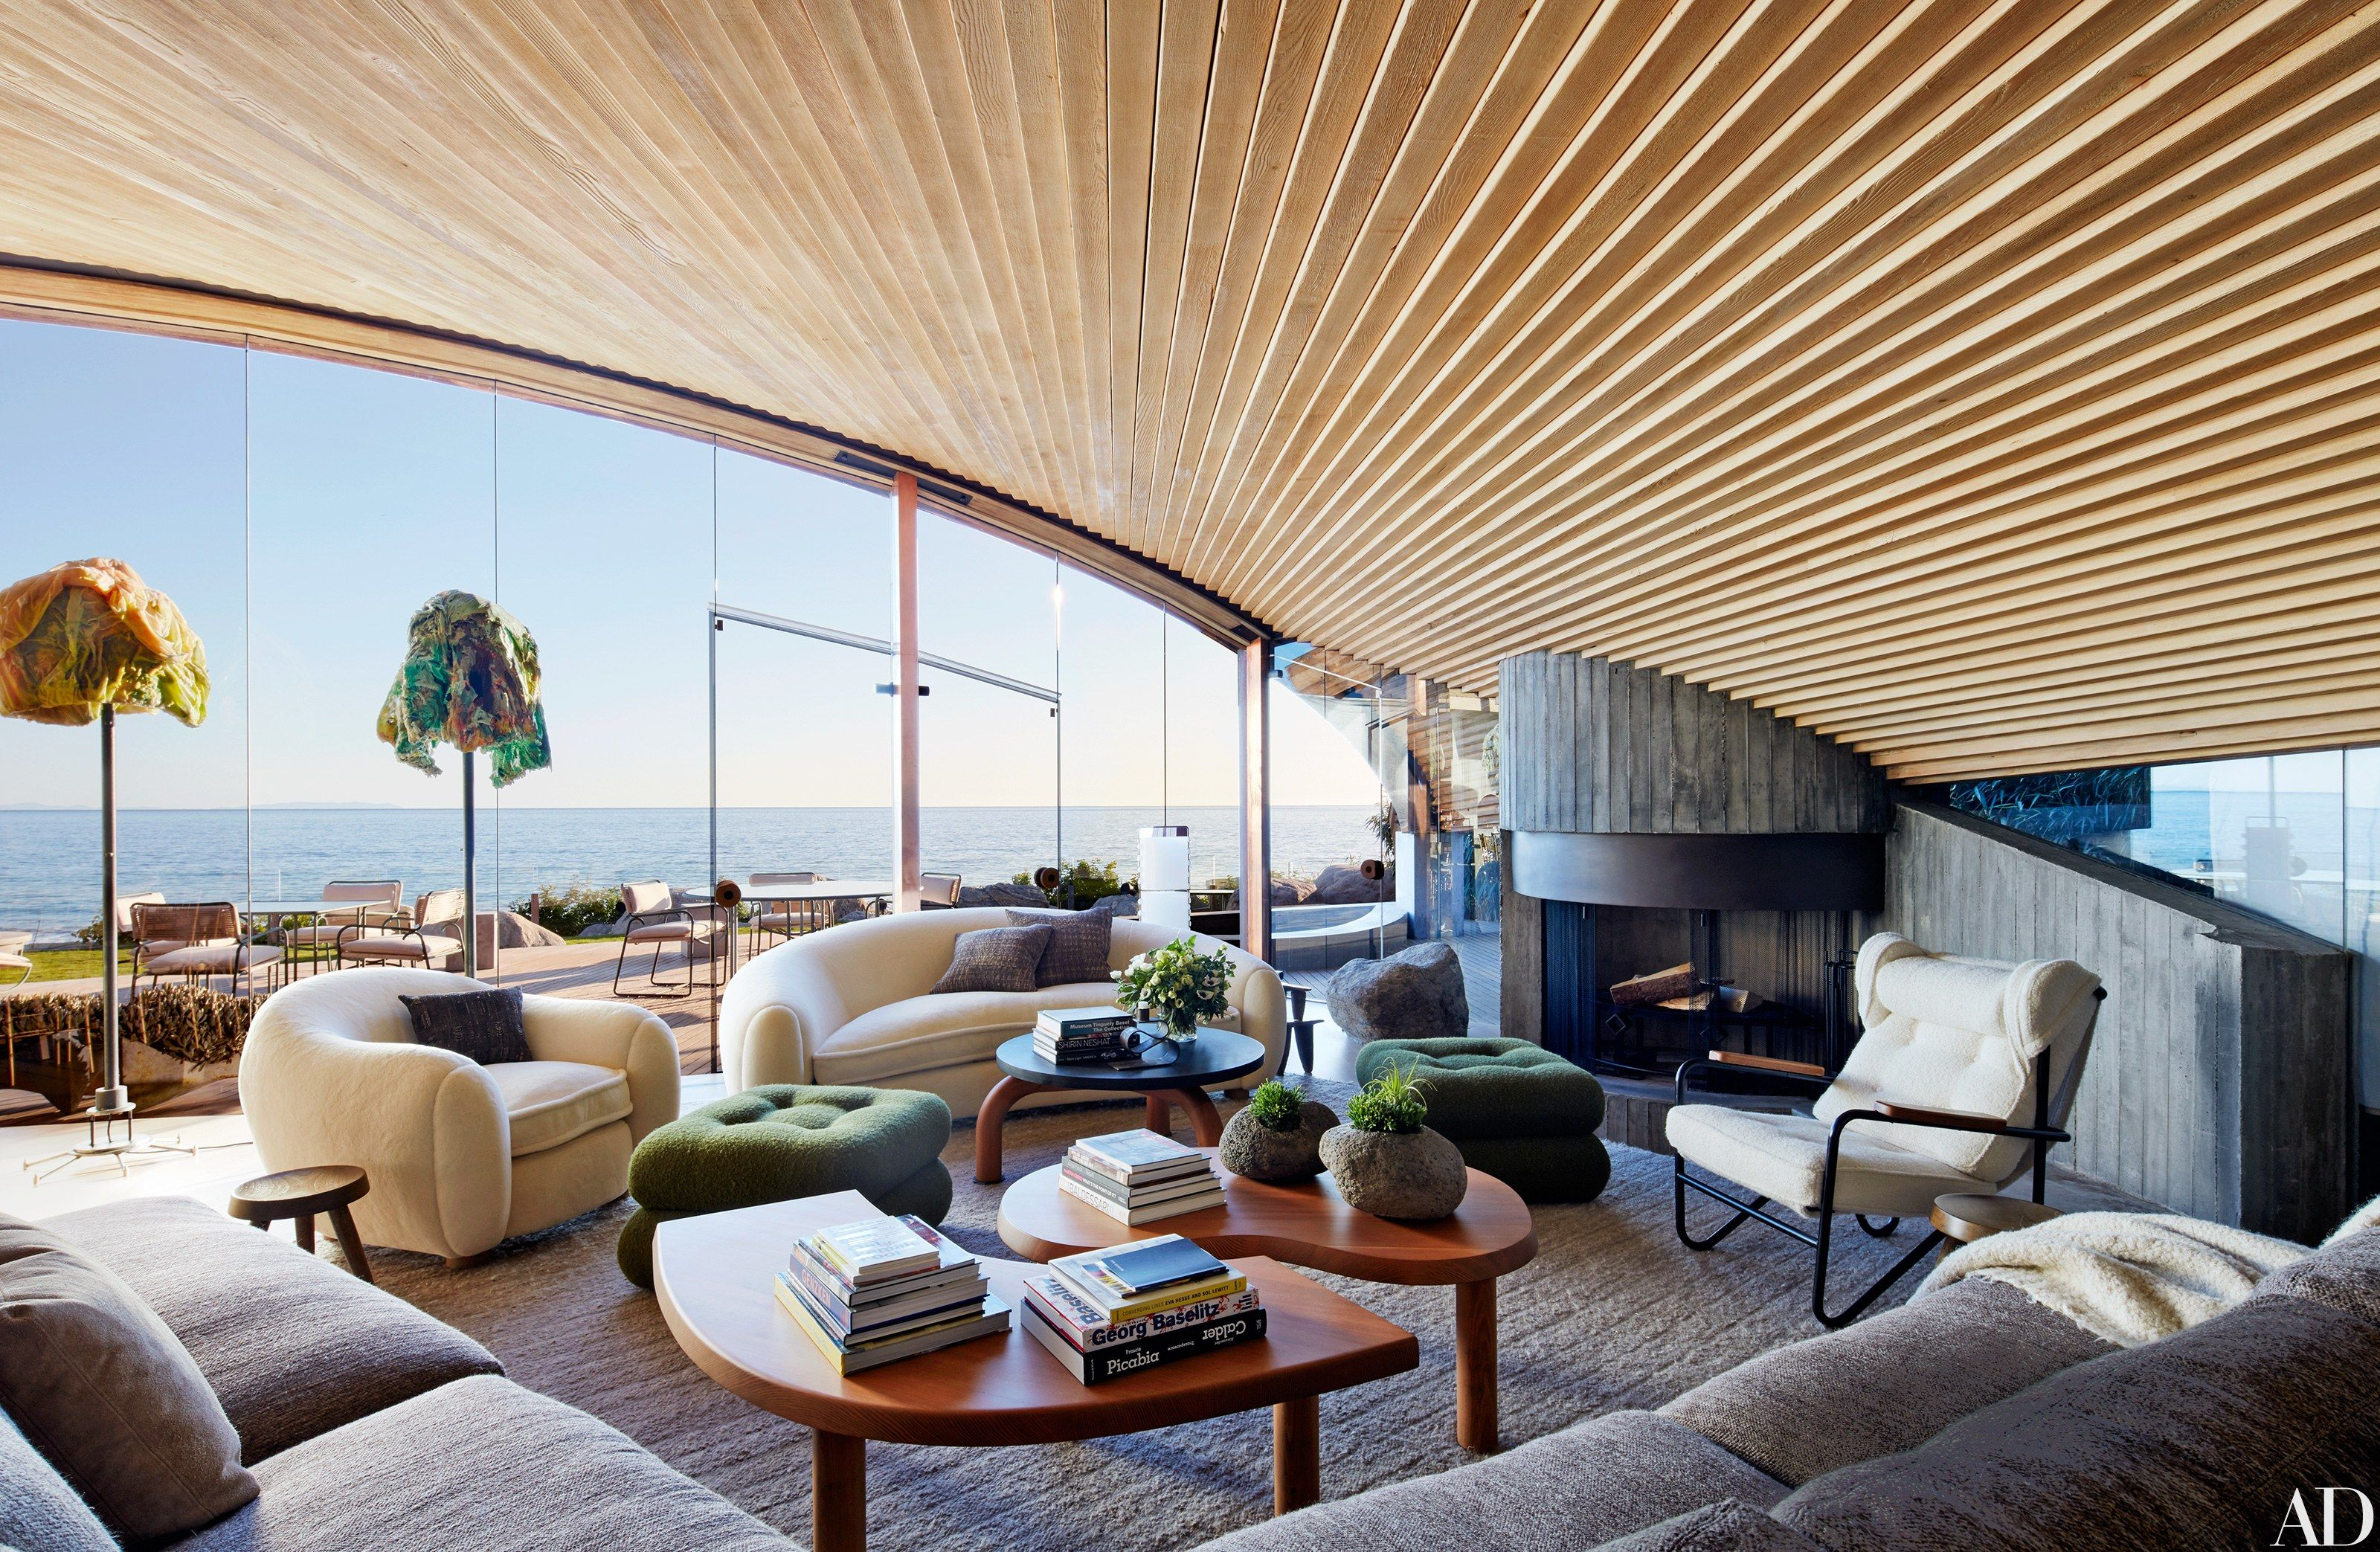 A john lautner beach house in malibu is revitalized john for Contemporary beach house interior design